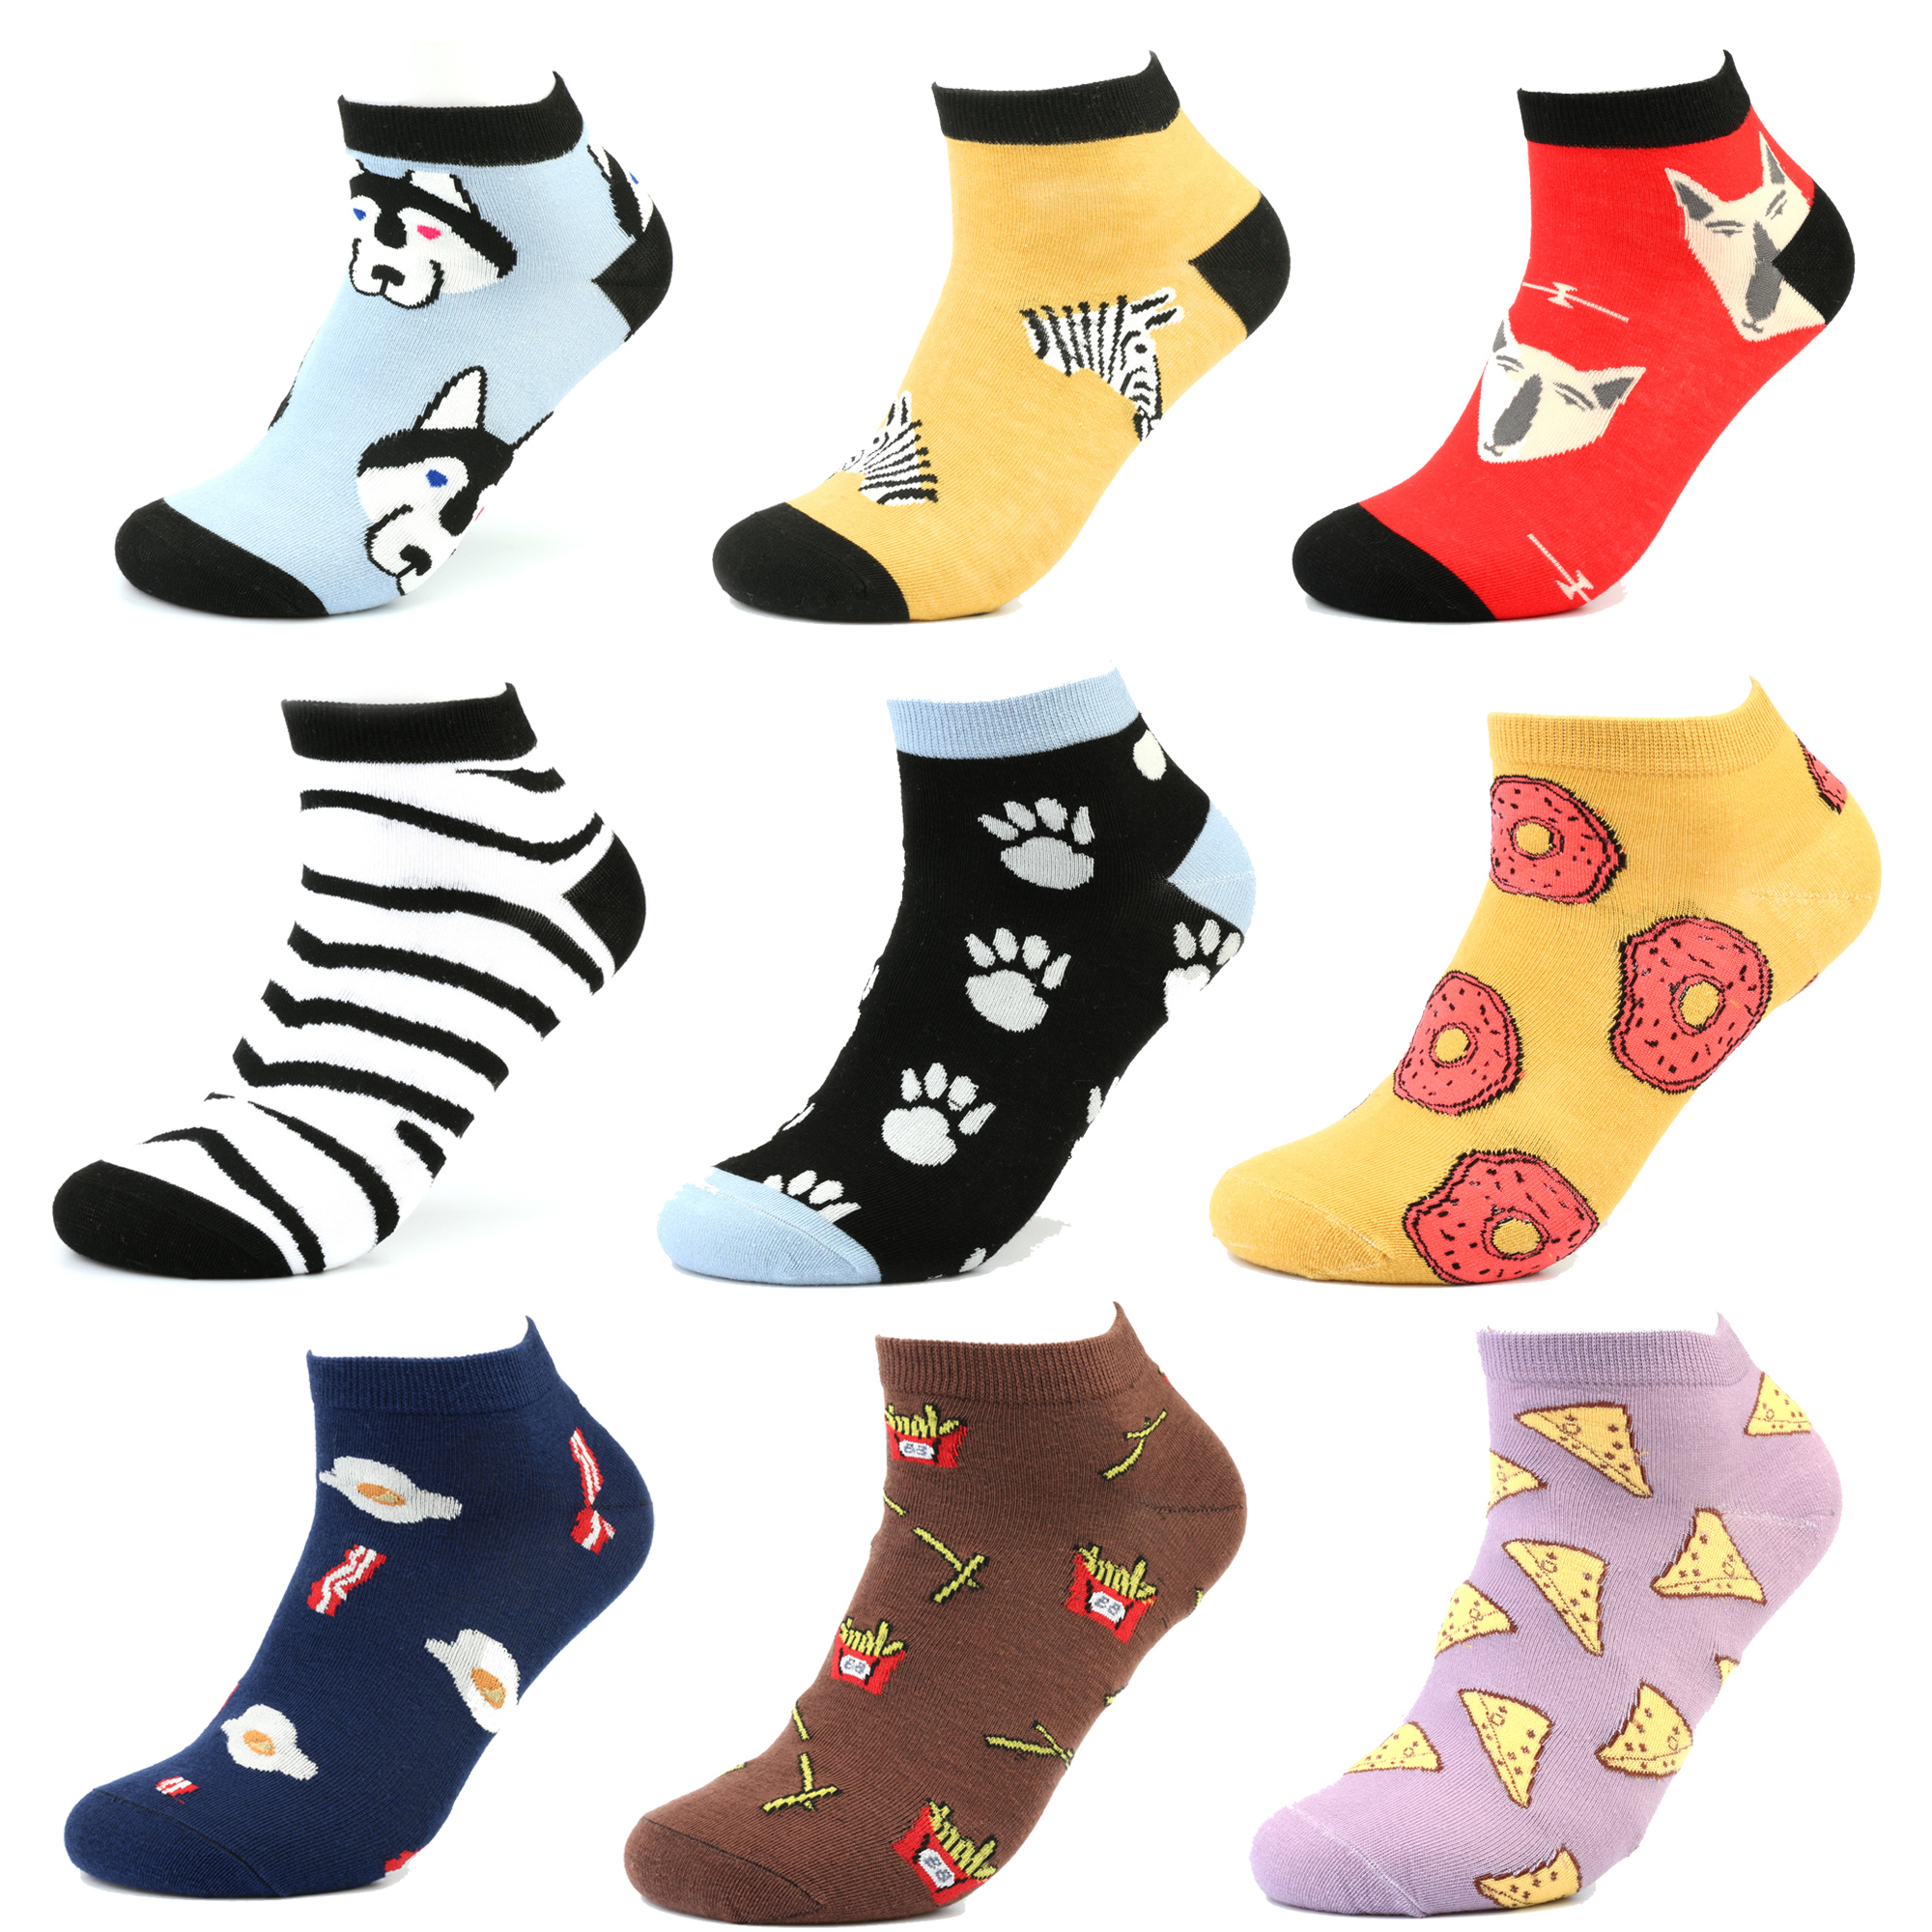 Women Men Socks Invisible Socks Streetwear Sneaker Animal Funny Ankle Socks Summer Dog  Flower Star Painting Cotton